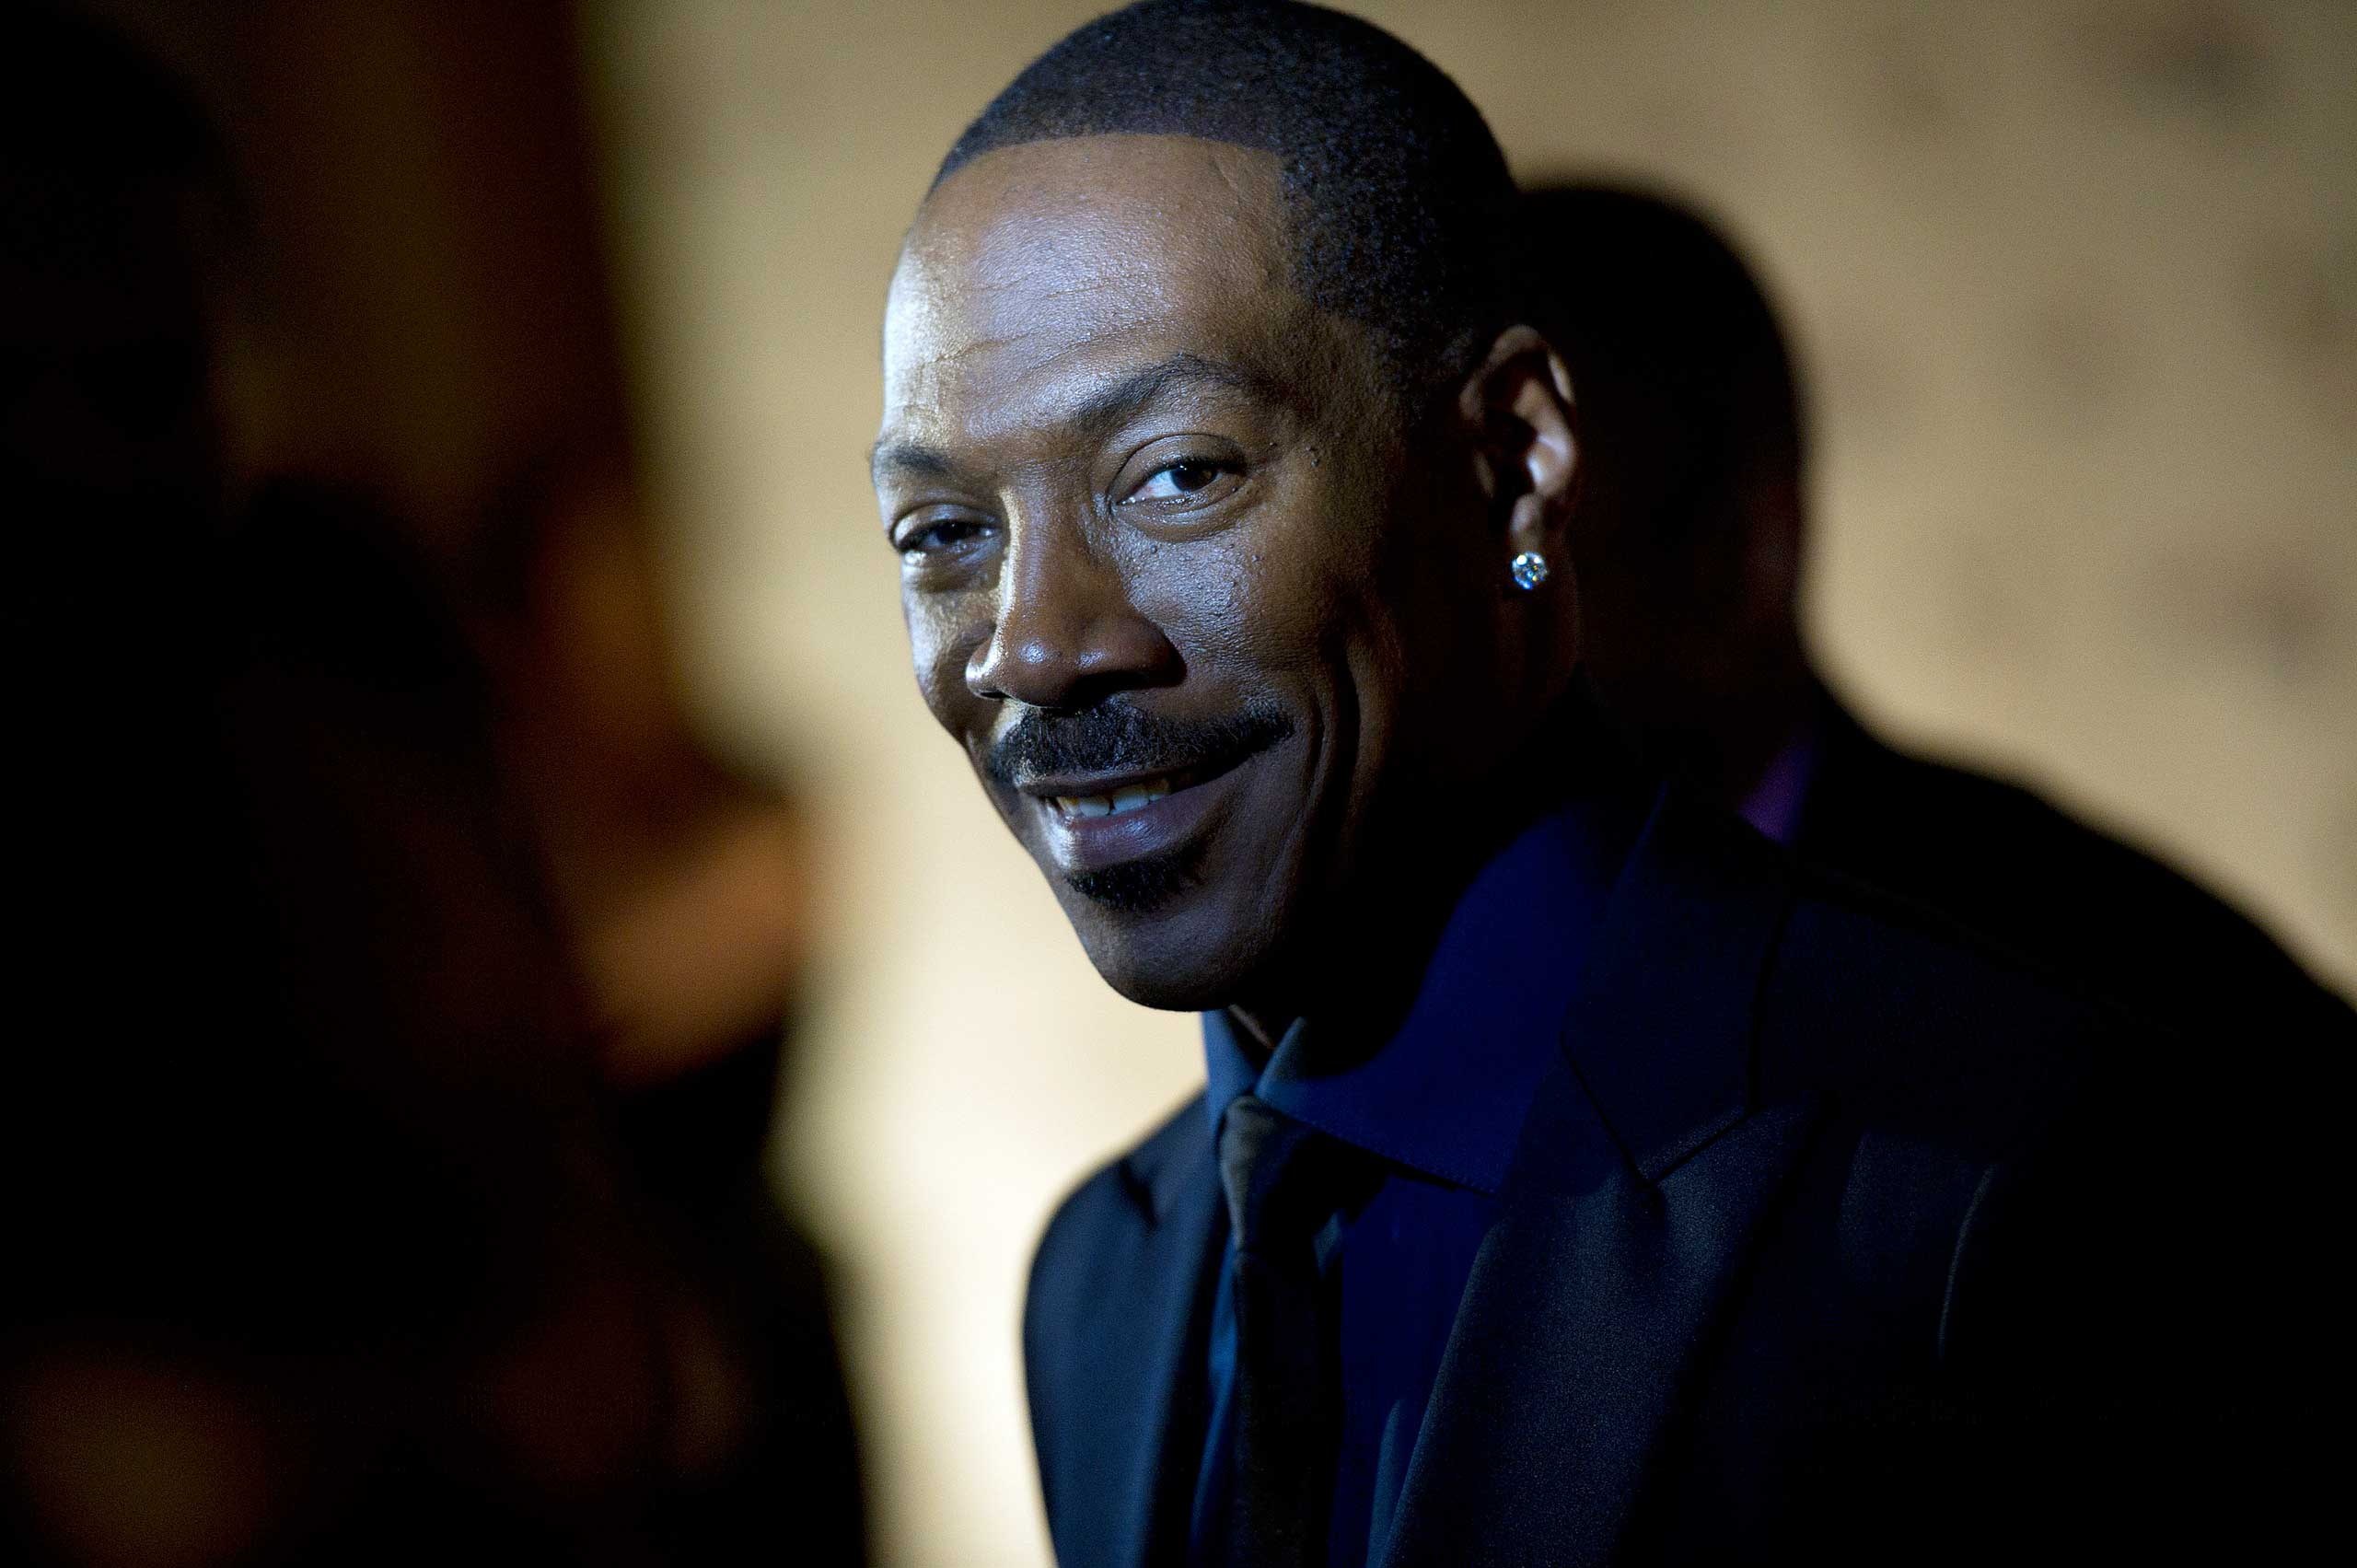 Eddie Murphy arrives at the Kennedy Center for the Mark Twain Prize for American Humor ceremony that honored Eddie Murphy in Washington, DC., on Oct. 18, 2015.